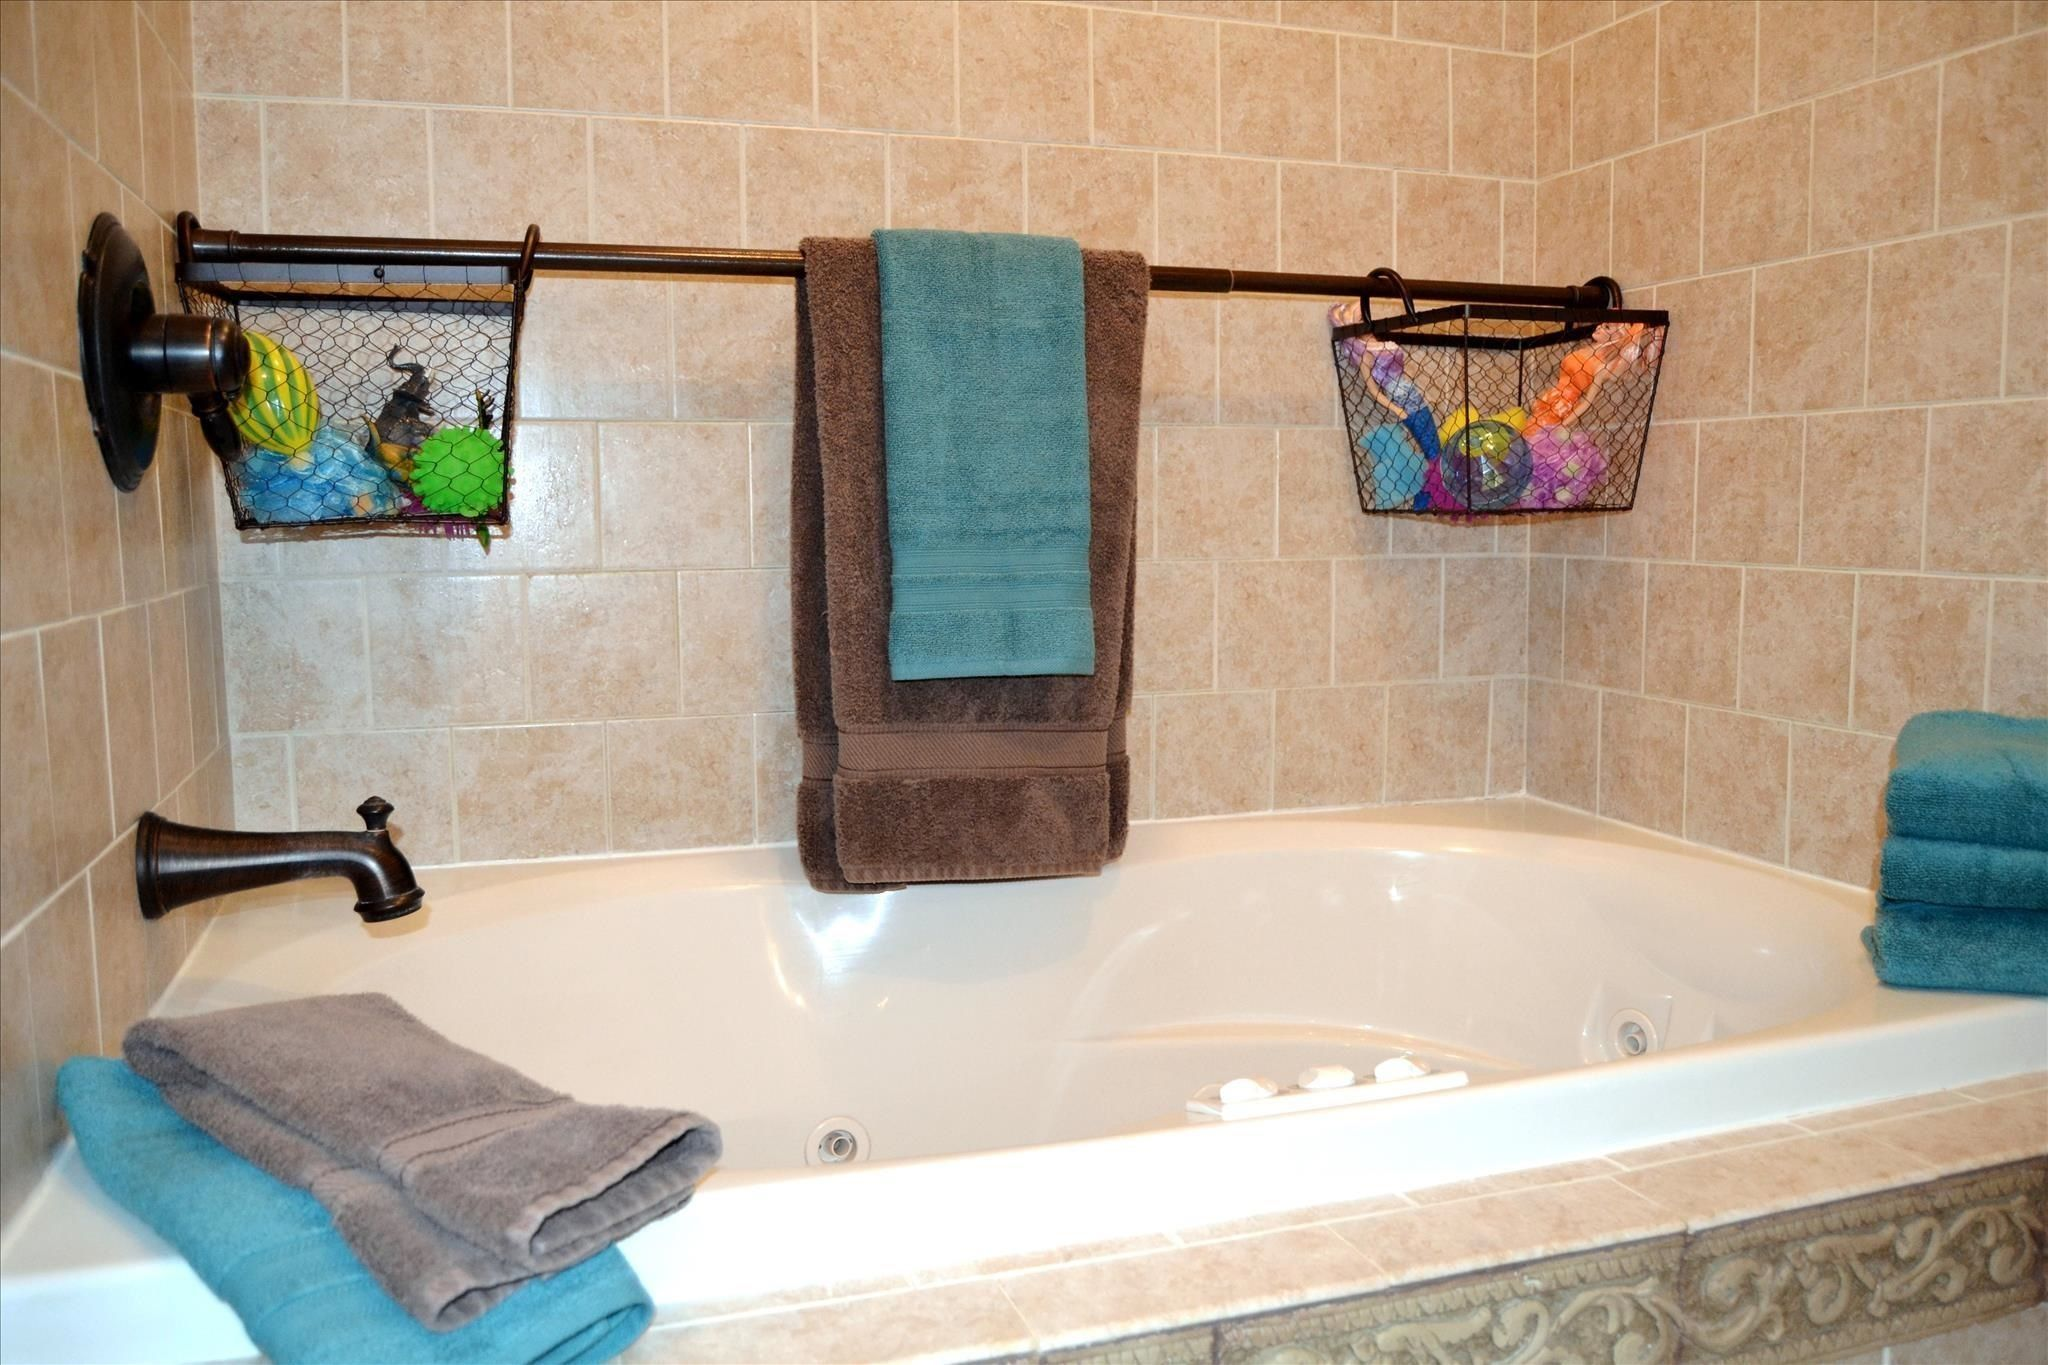 How To: Use Extra Shower Curtain Rods to Increase Bathroom Storage ...